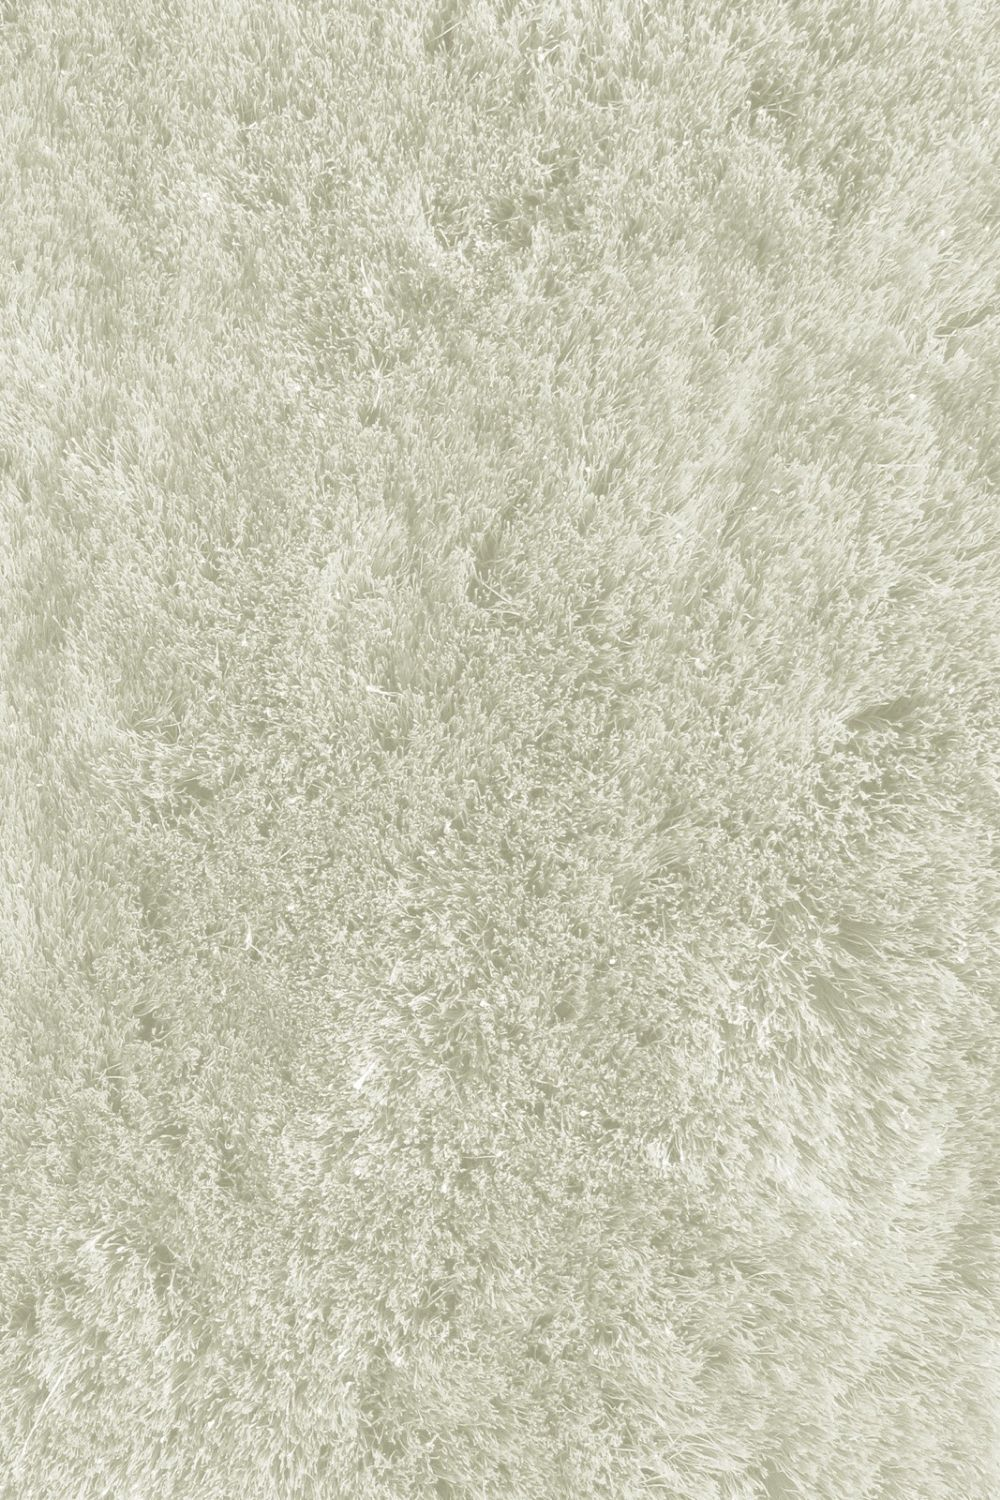 la rugs soft shaggy shag area rug collection